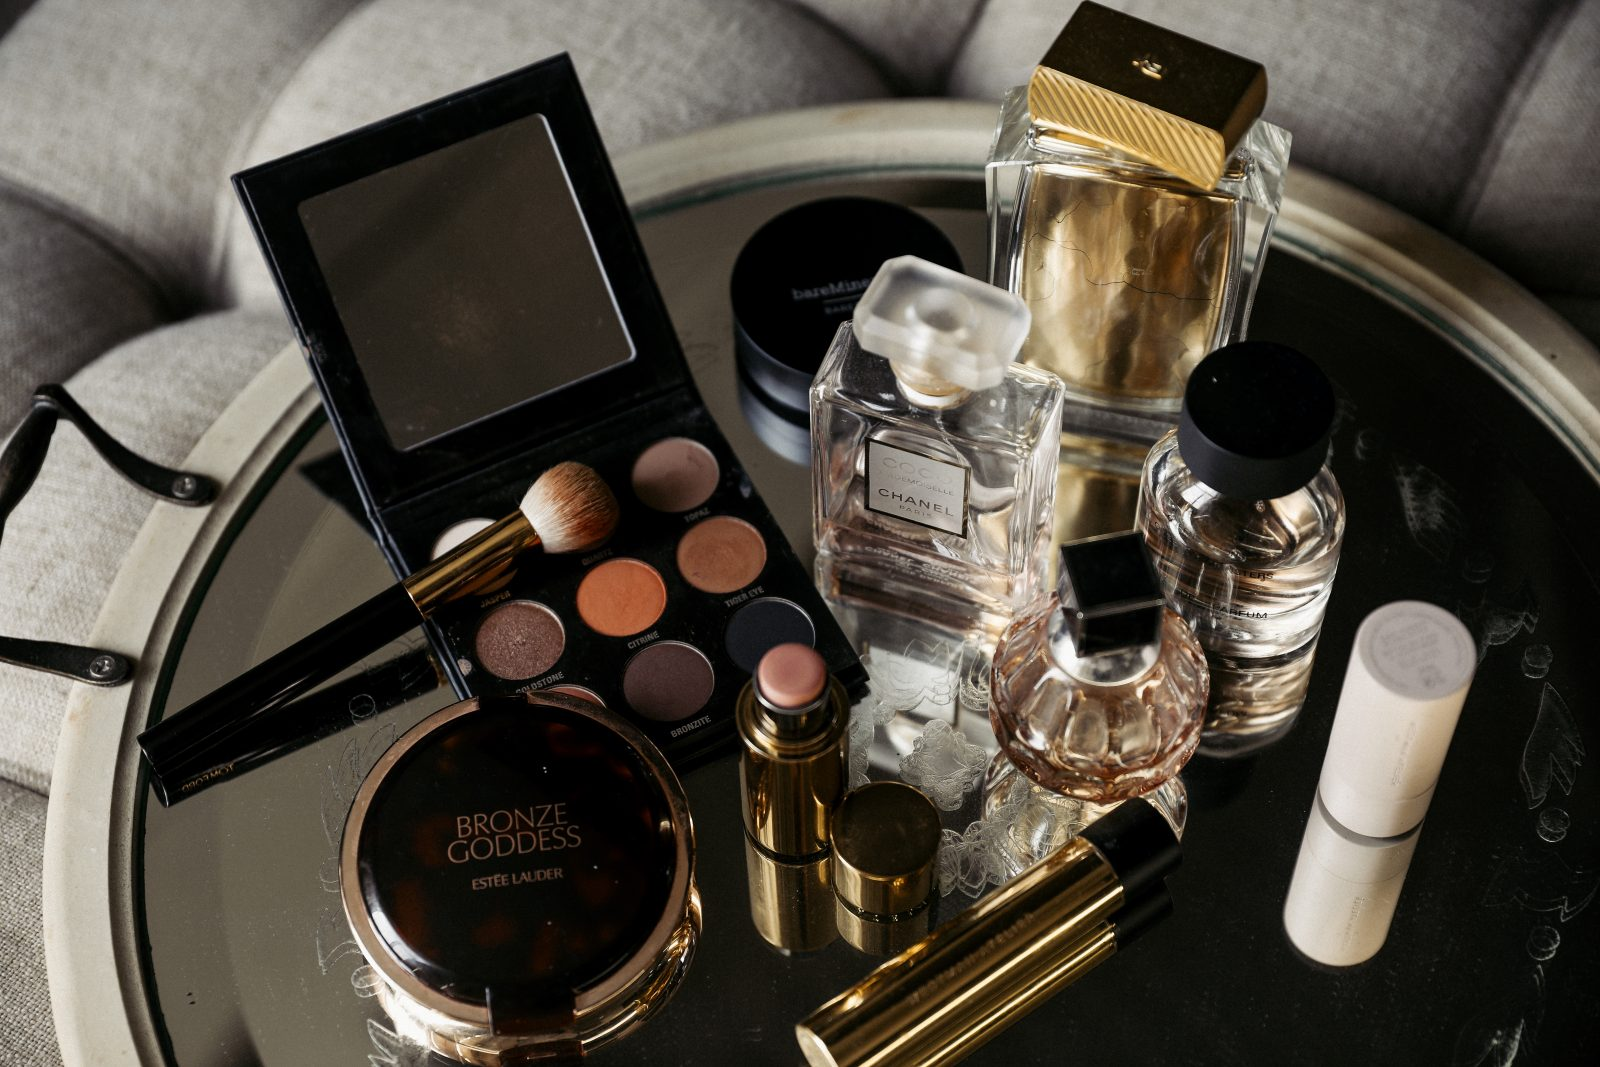 A collection of favorite cosmetic essentials from Elizabeth Allen